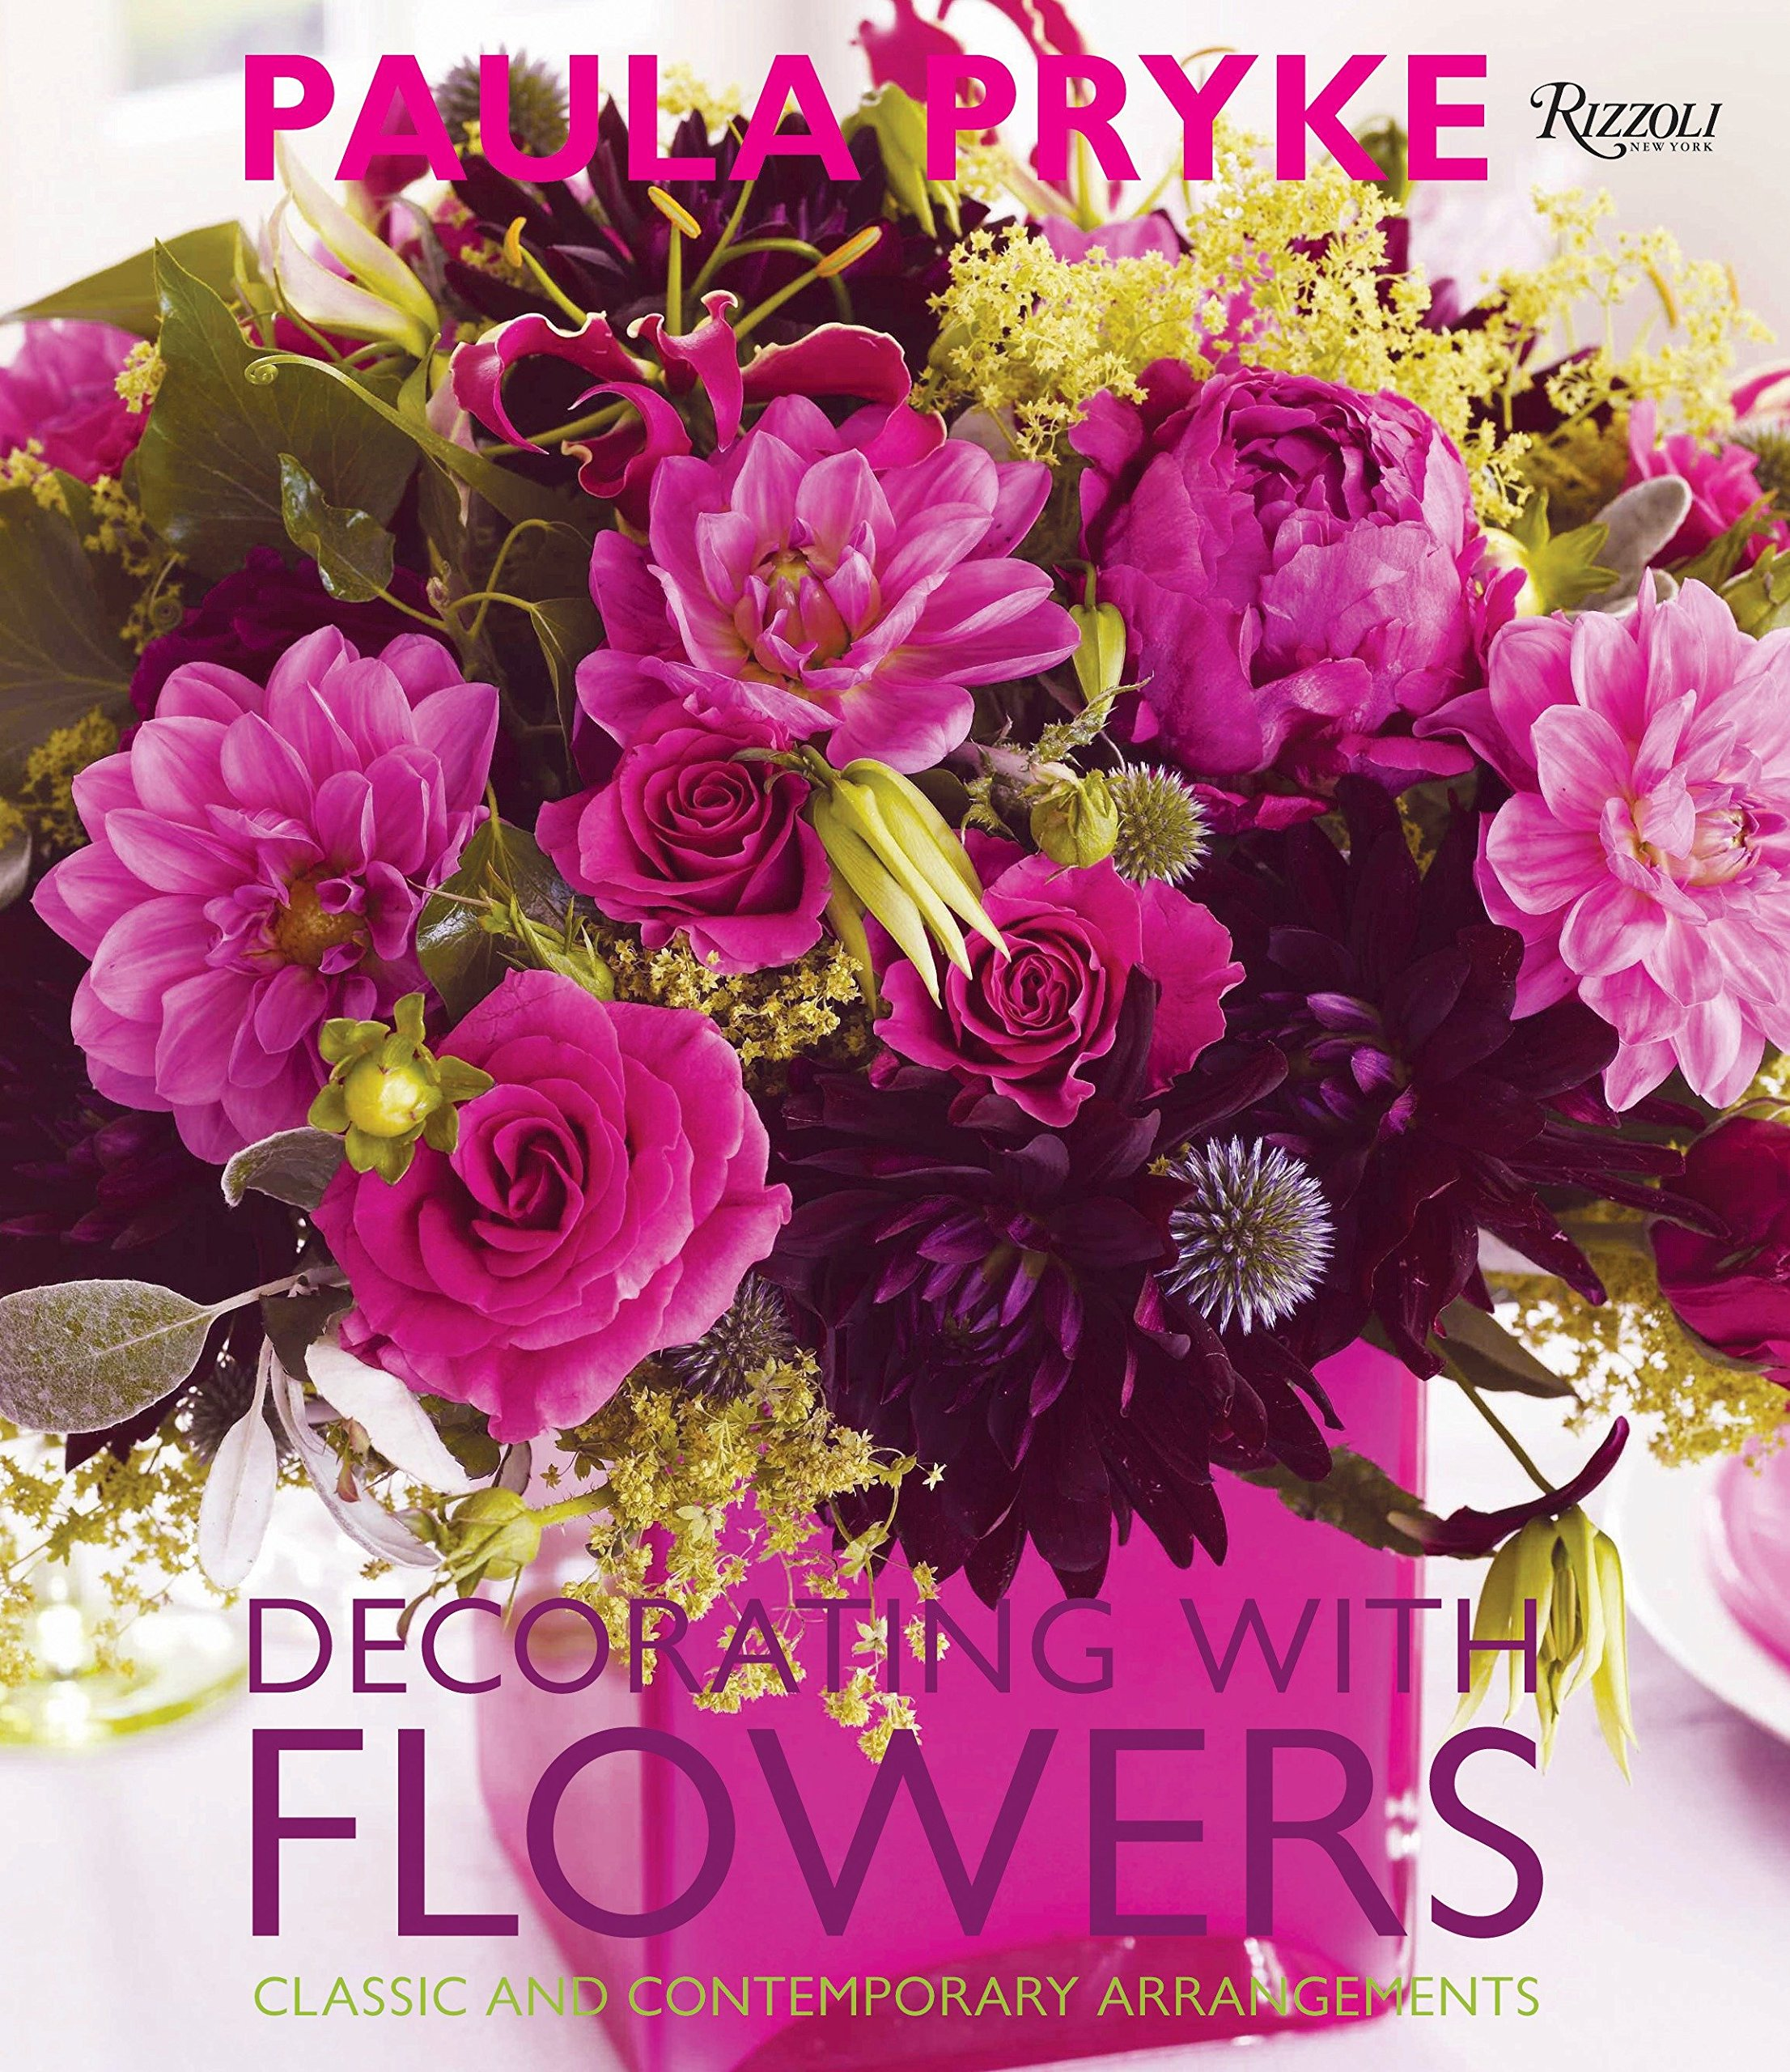 Decorating with Flowers: Classic and Contemporary Arrangements ...